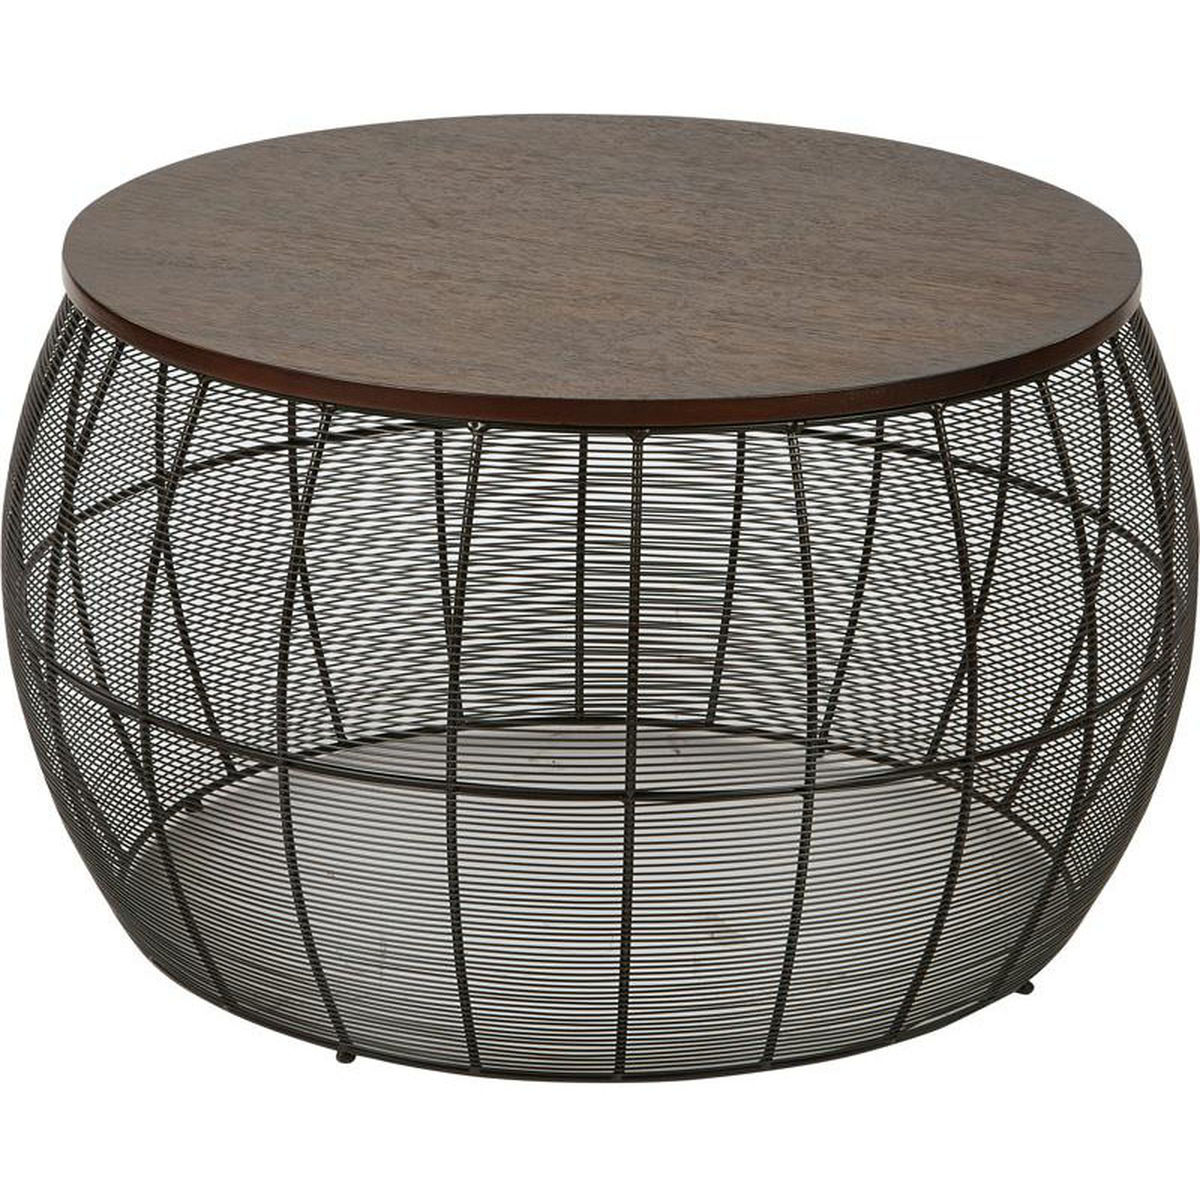 camden piece round accent tables bizchair office star products table our osp designs metal with wood top espresso unique wine racks small corner unfinished side half world market